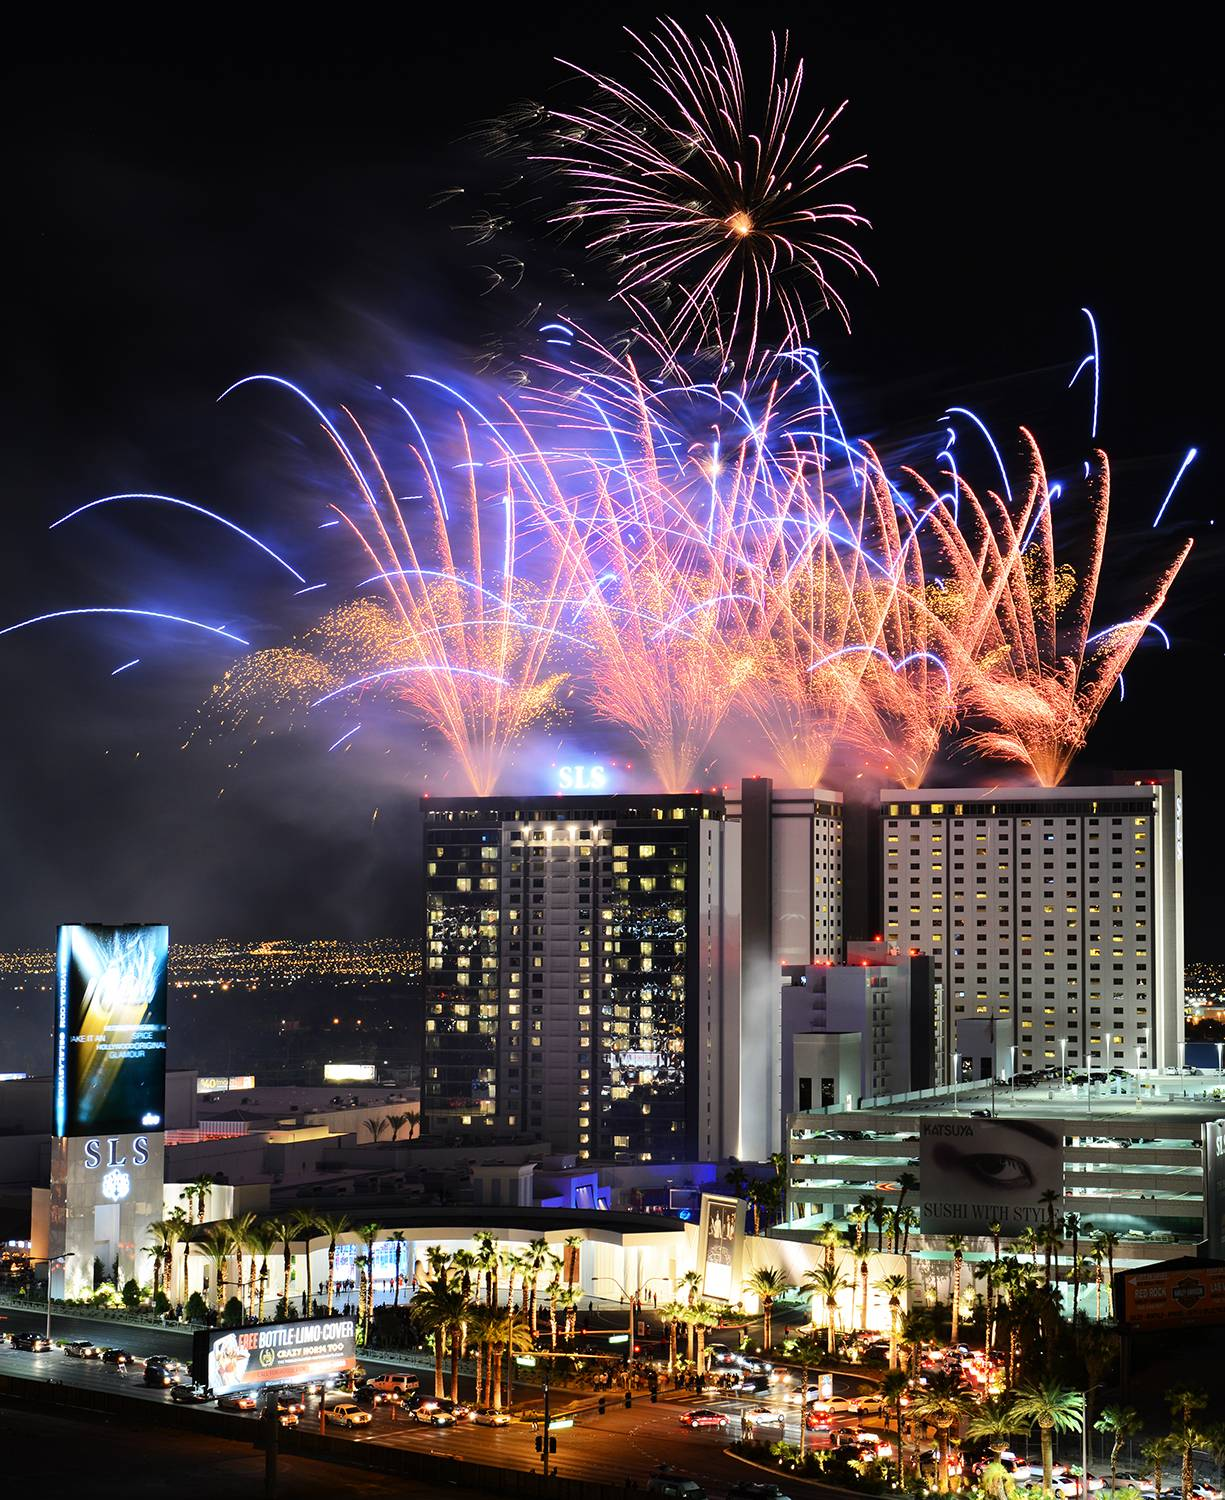 Fireworks erupt over the SLS Las Vegas during a grand opening celebration on the Las Vegas Strip Friday. The SLS is an all-encompassing resort and casino with more than 1,600 guest rooms and suites.